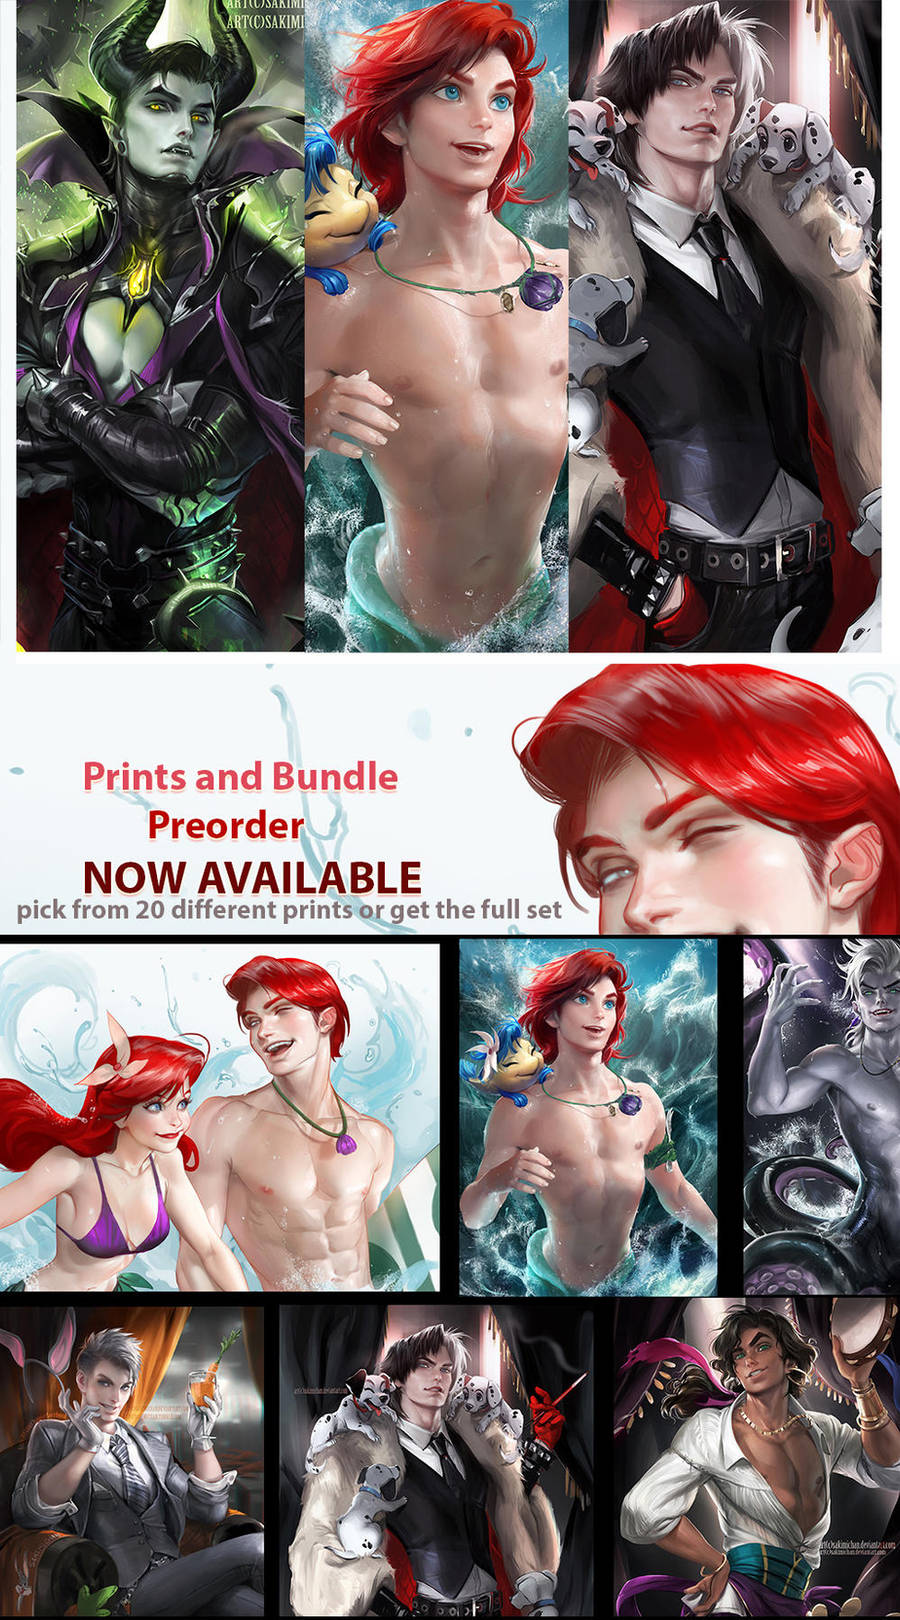 gb_print_bundle_sale__october_preorder__